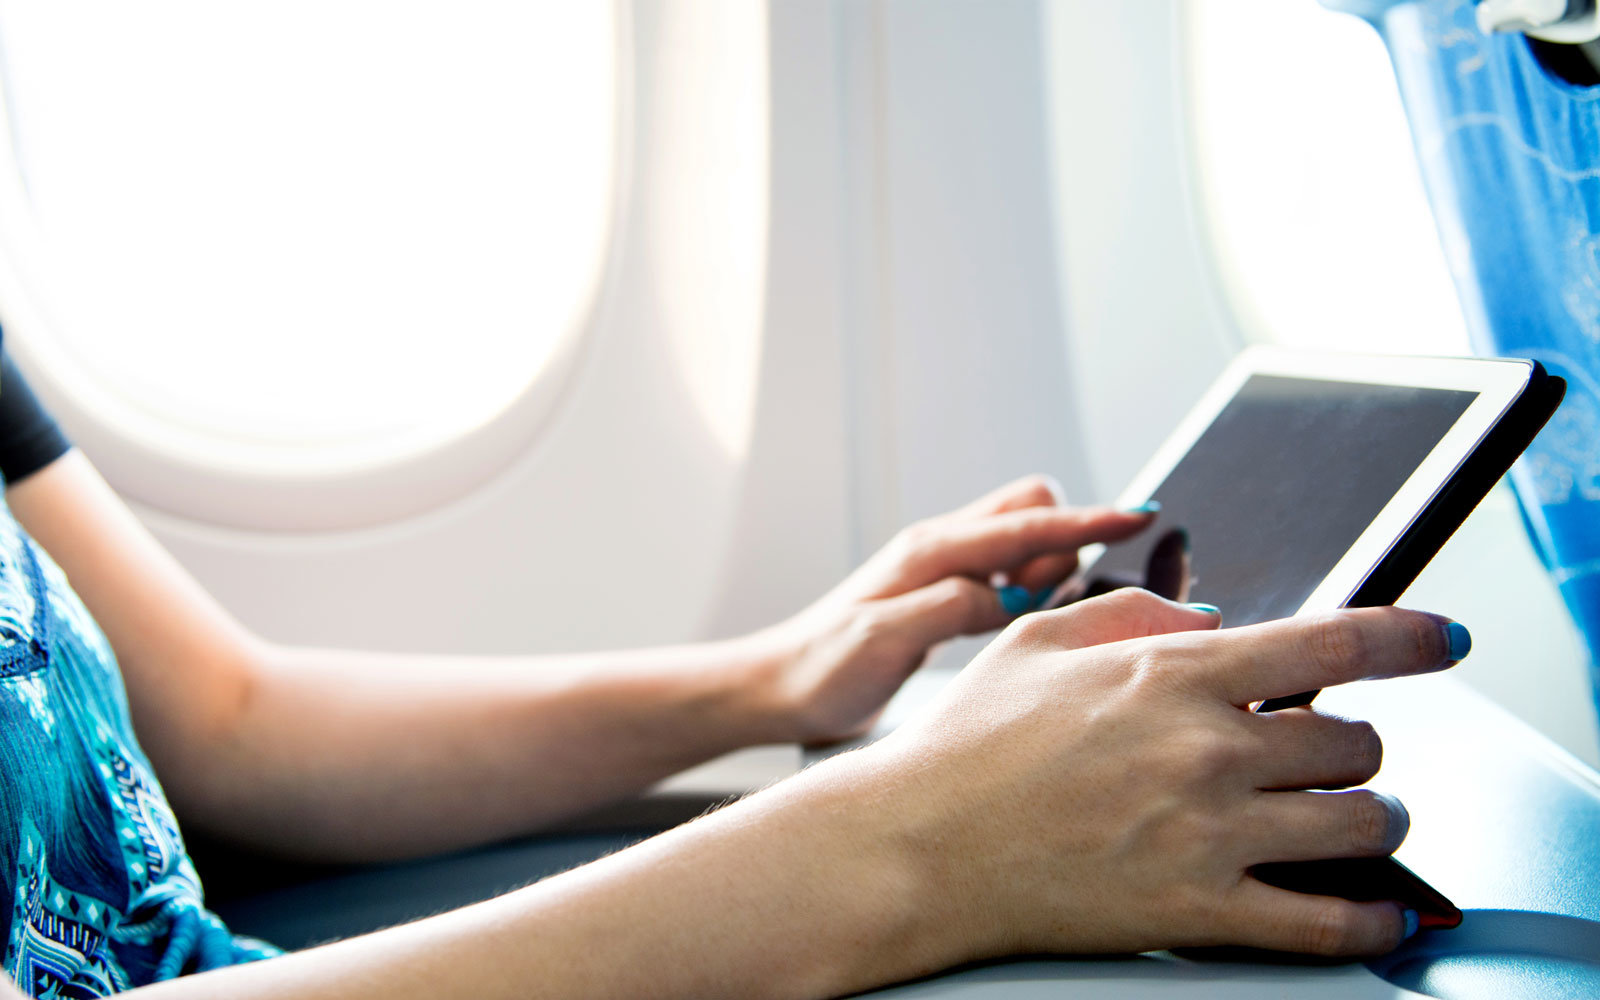 person-on-ipad-plane-IPAD317.jpg